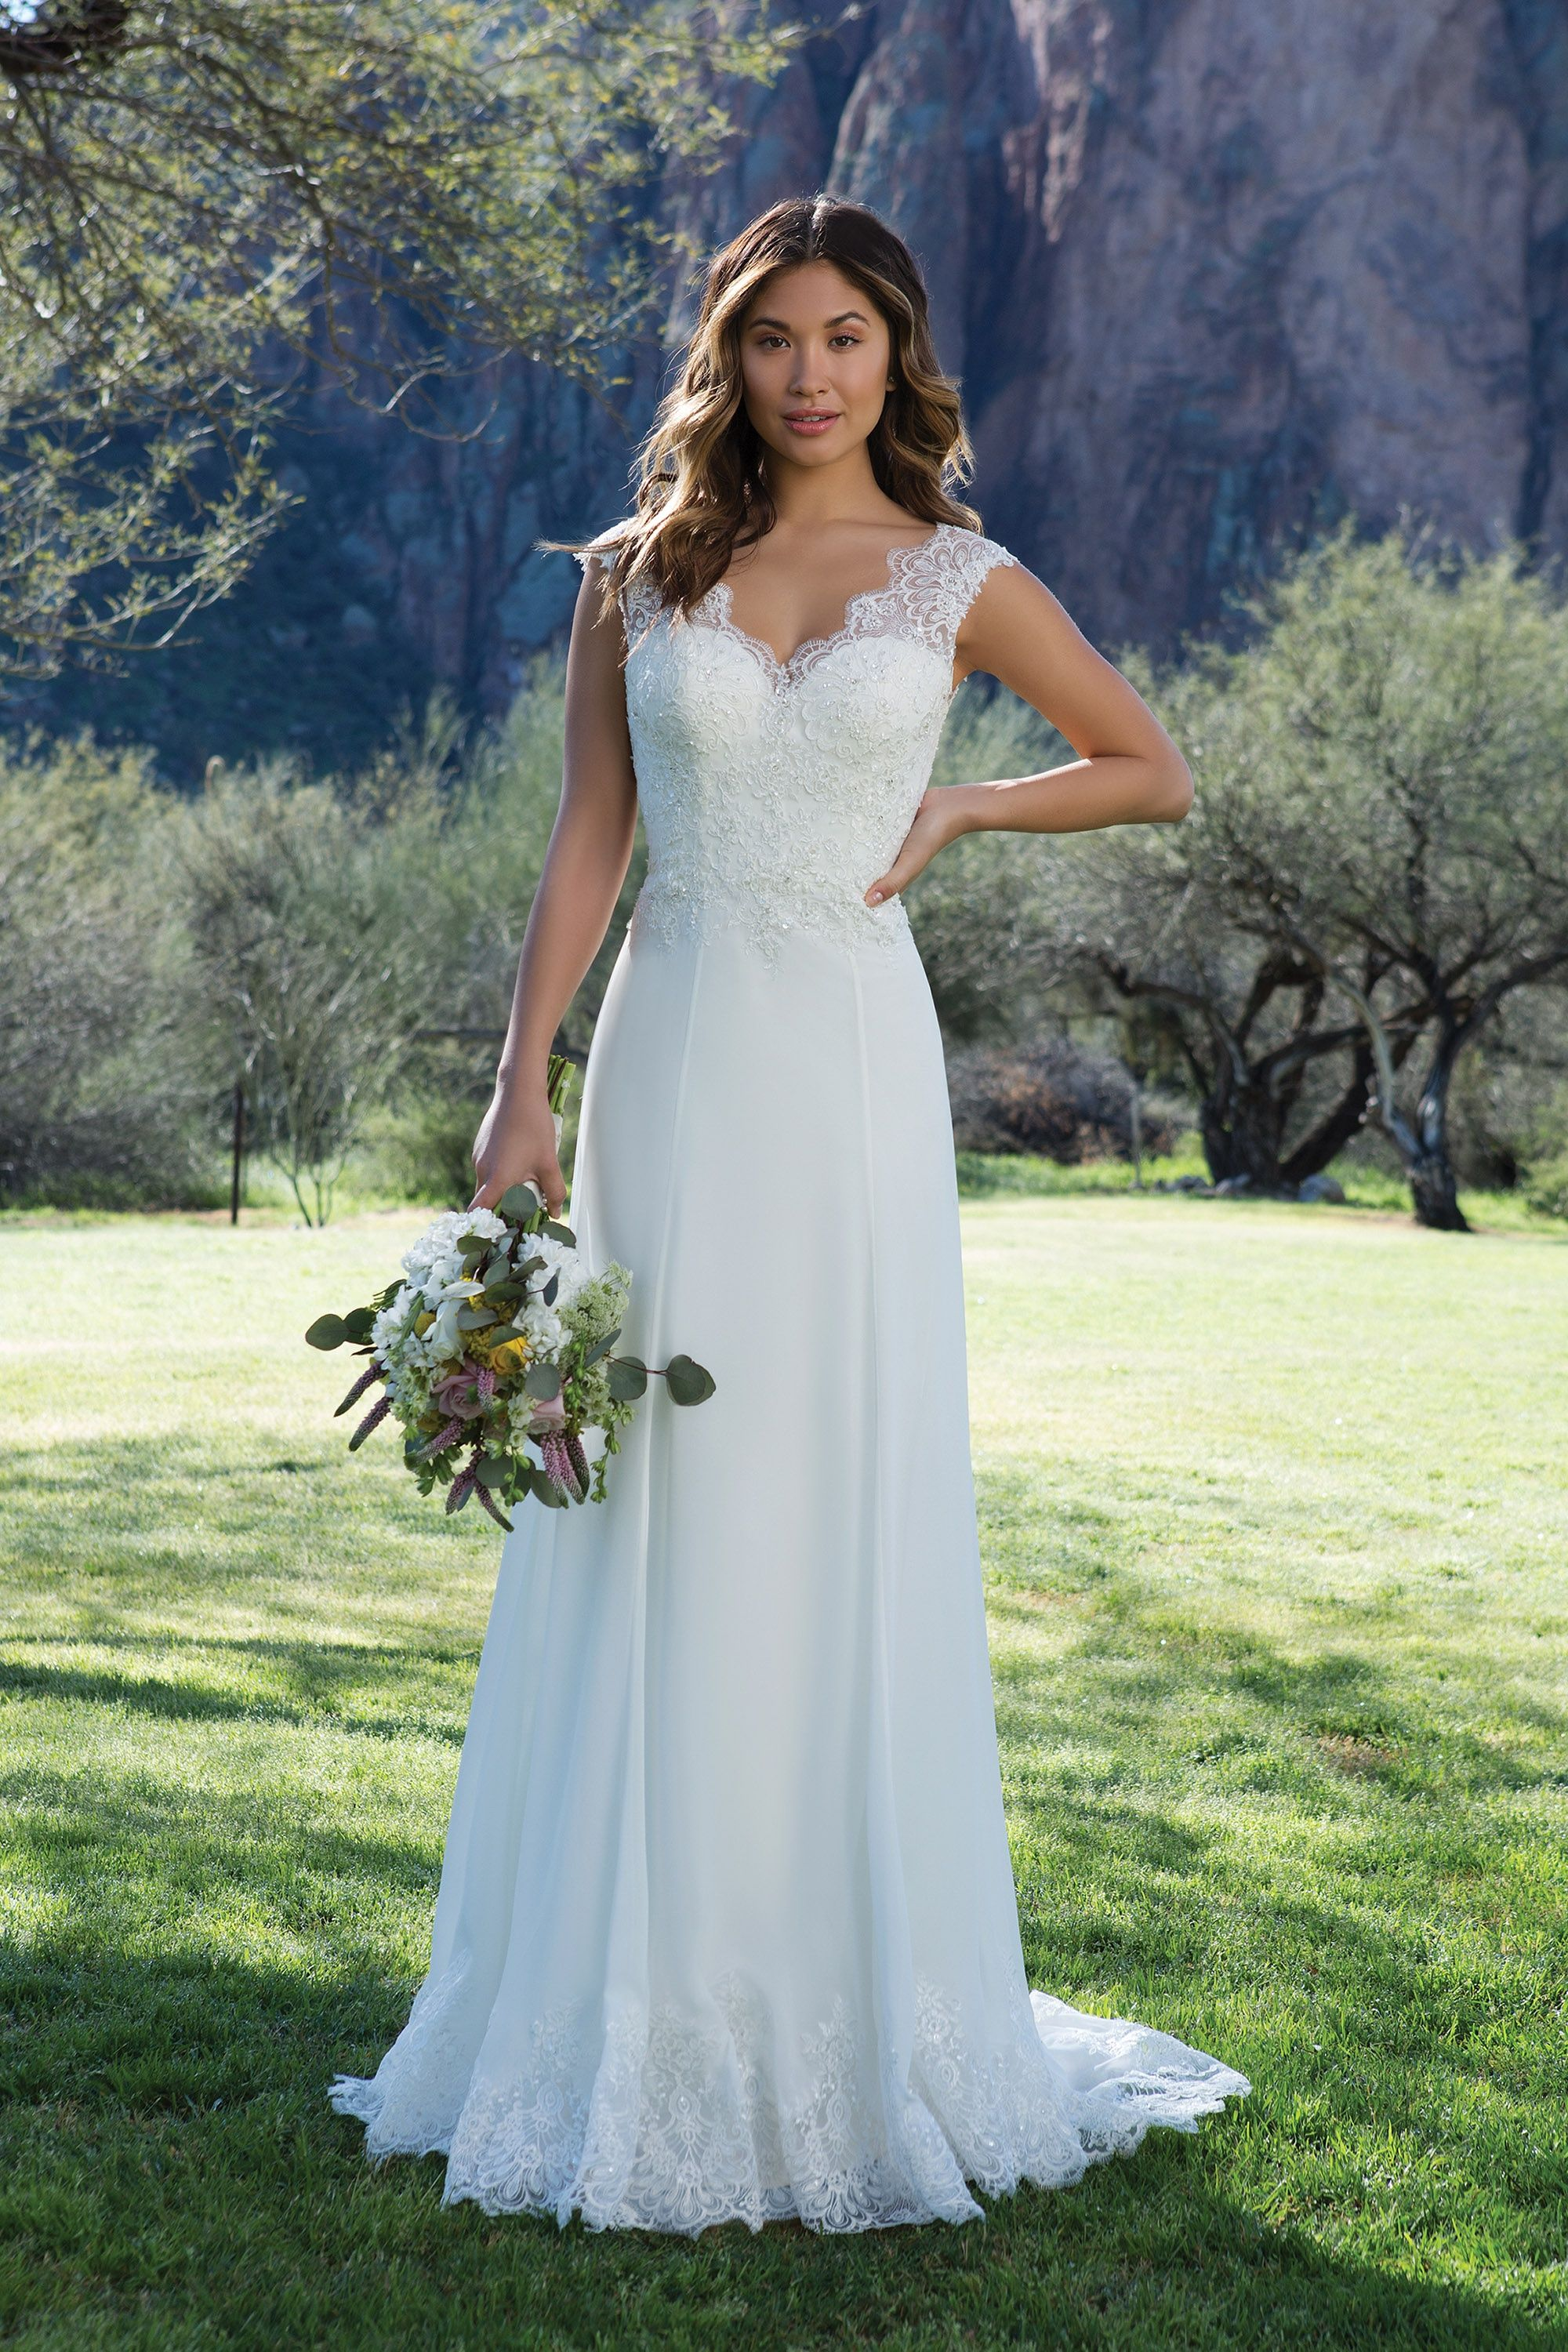 Sweetheart Gowns 1125 Ivory Size 10 Romantic Lace and Chiffon Gown